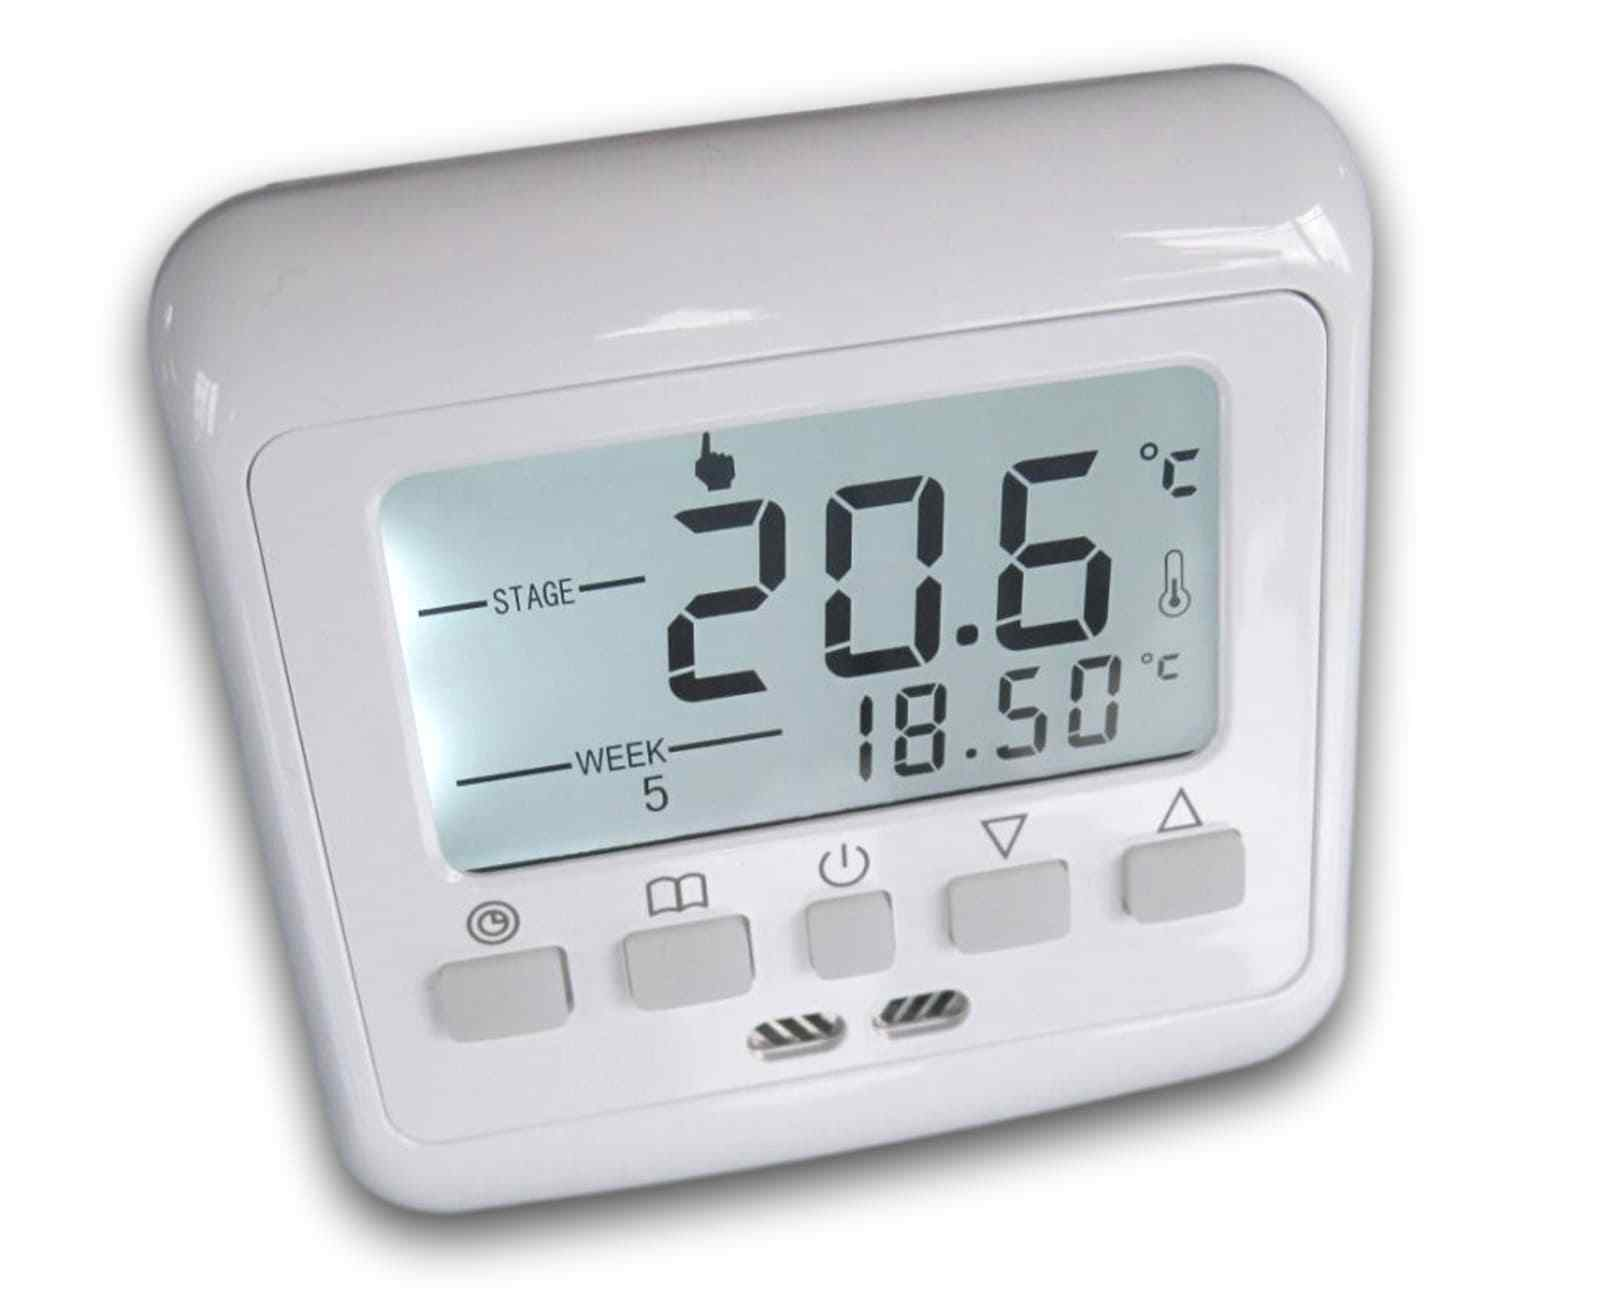 digital thermostat raumthermostat 831 lcd weiss fussbodenheizung wandheizung eur 16 99. Black Bedroom Furniture Sets. Home Design Ideas